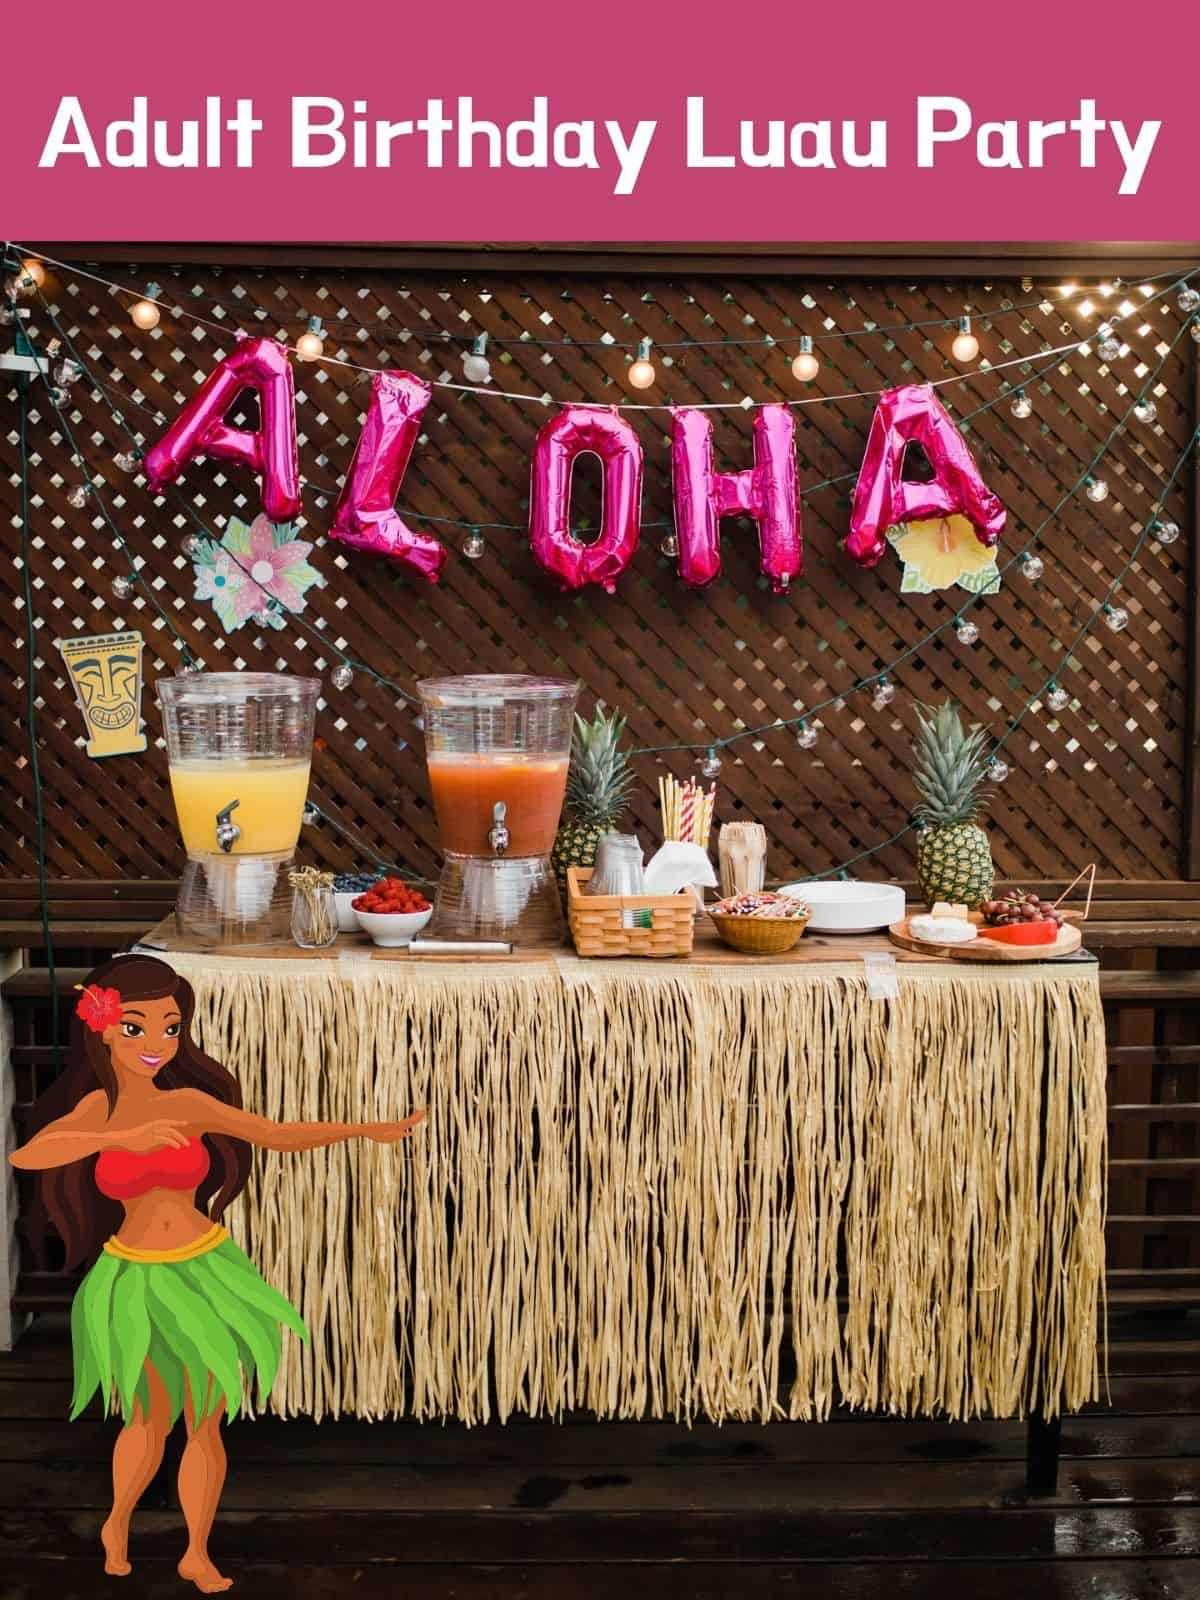 punch table with aloha over it